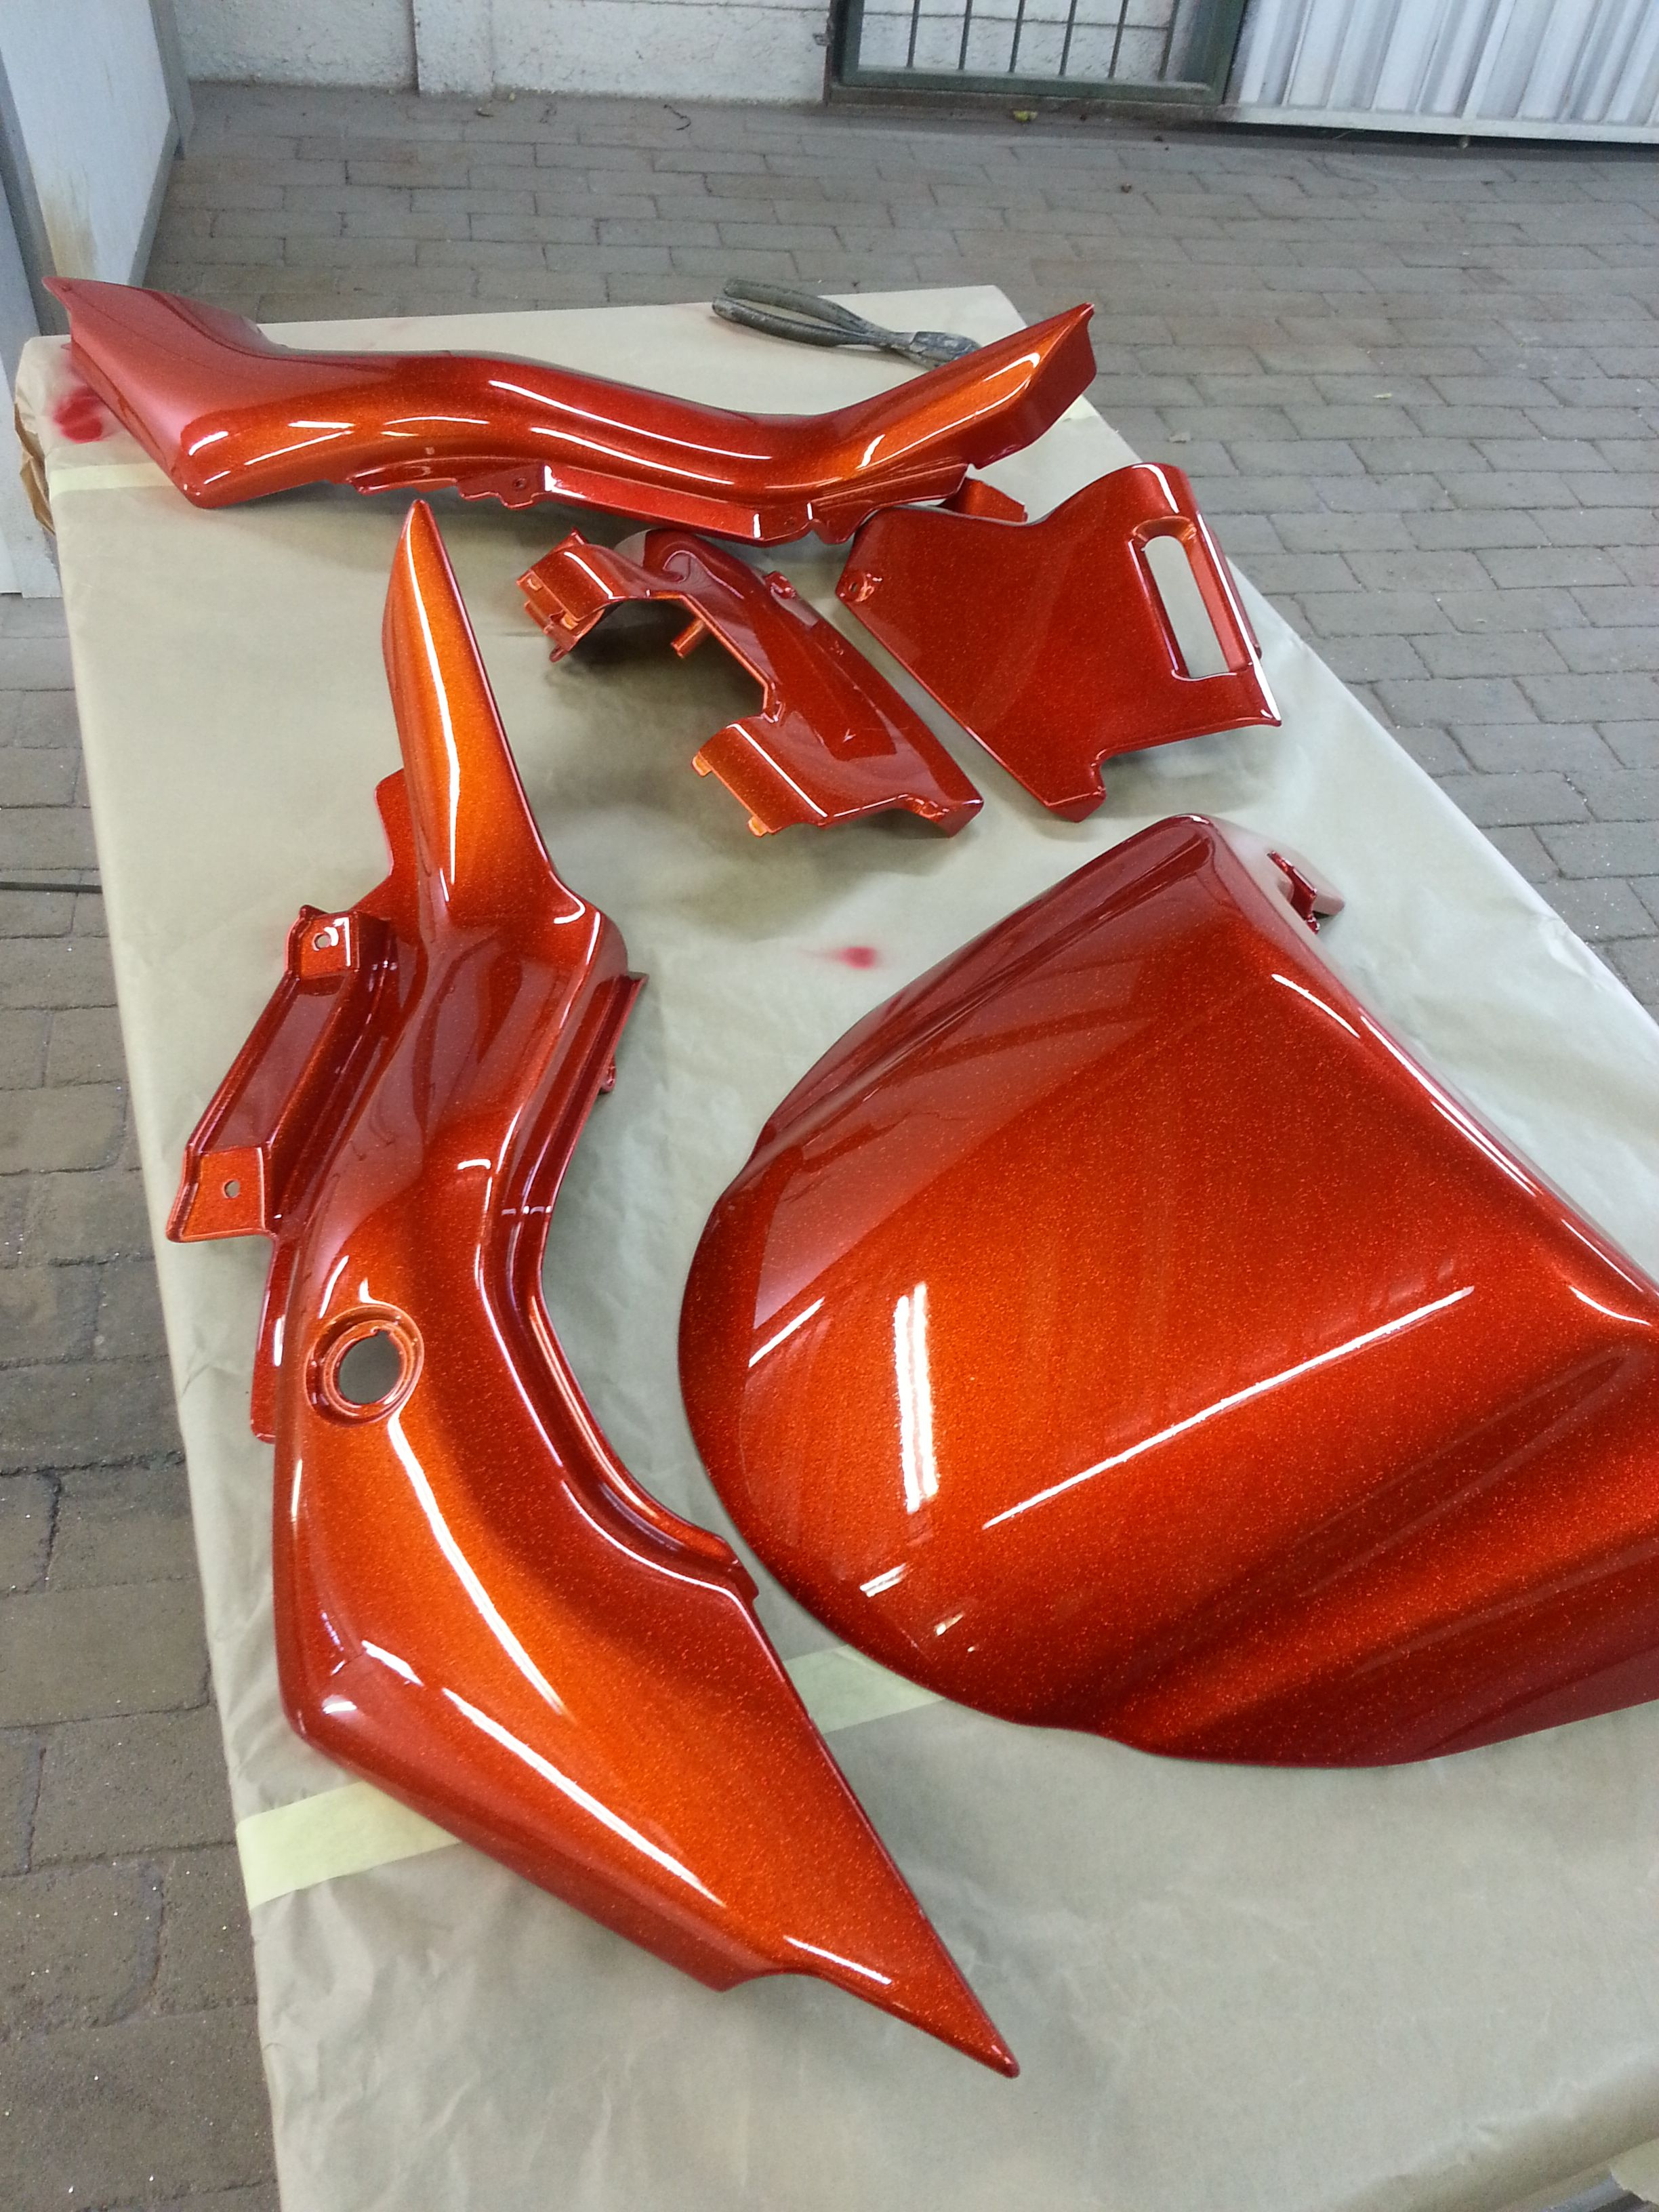 Candy Burnt Orange with a Flake Base sure gives any bike a juicy